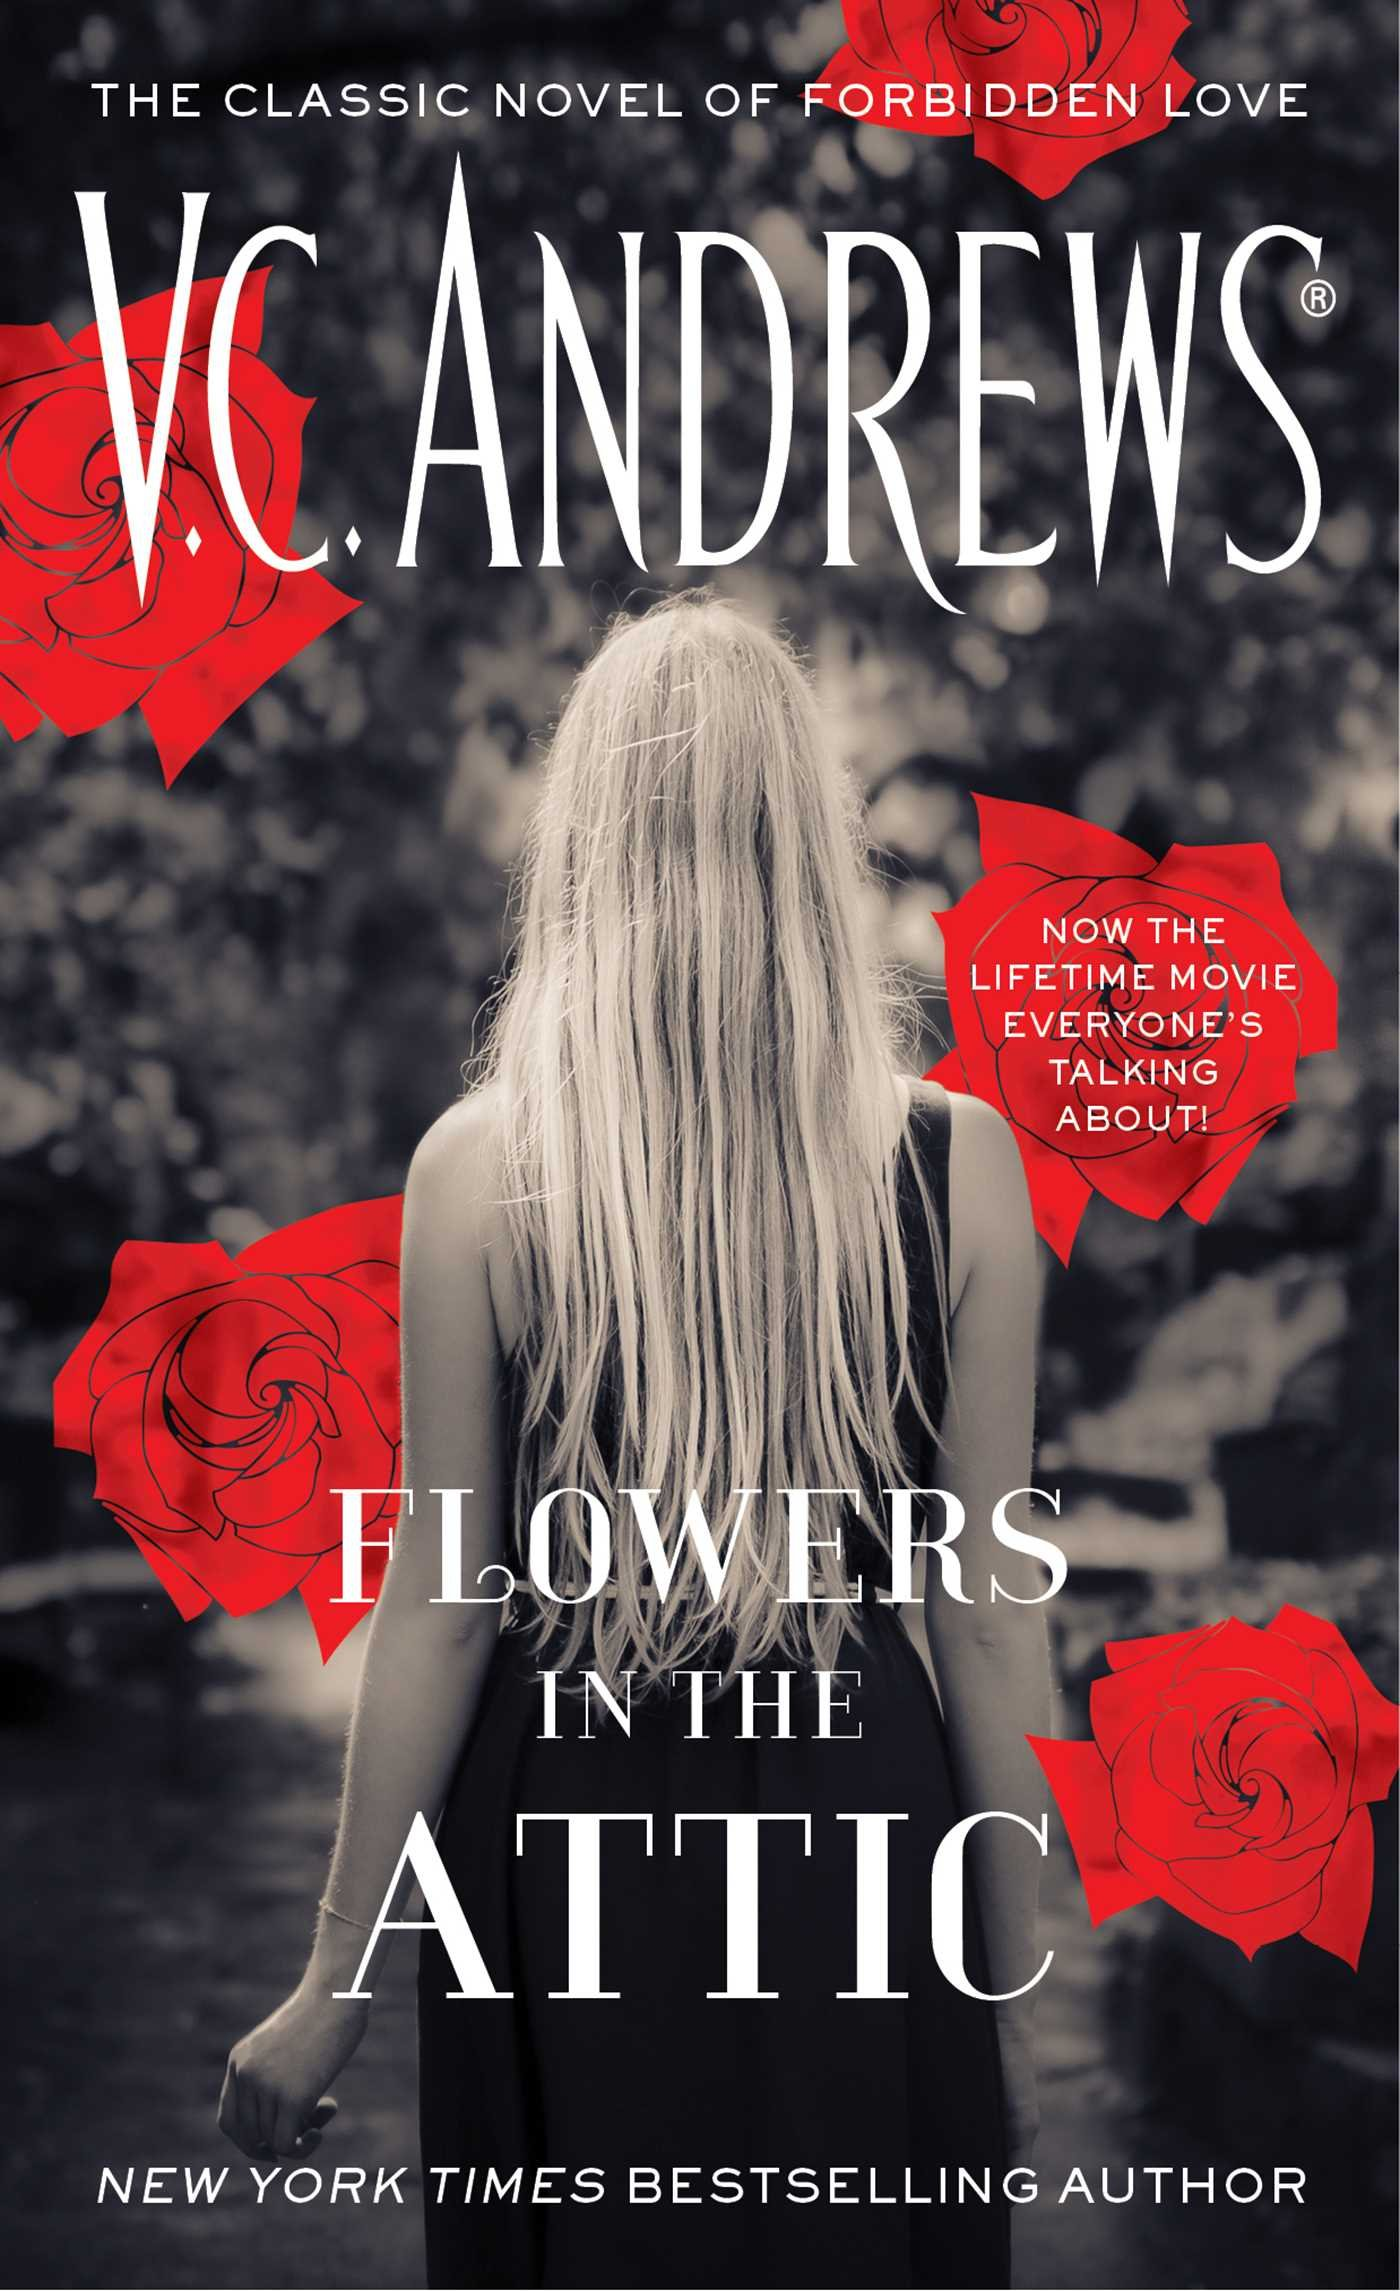 the attic book Flowers cover in